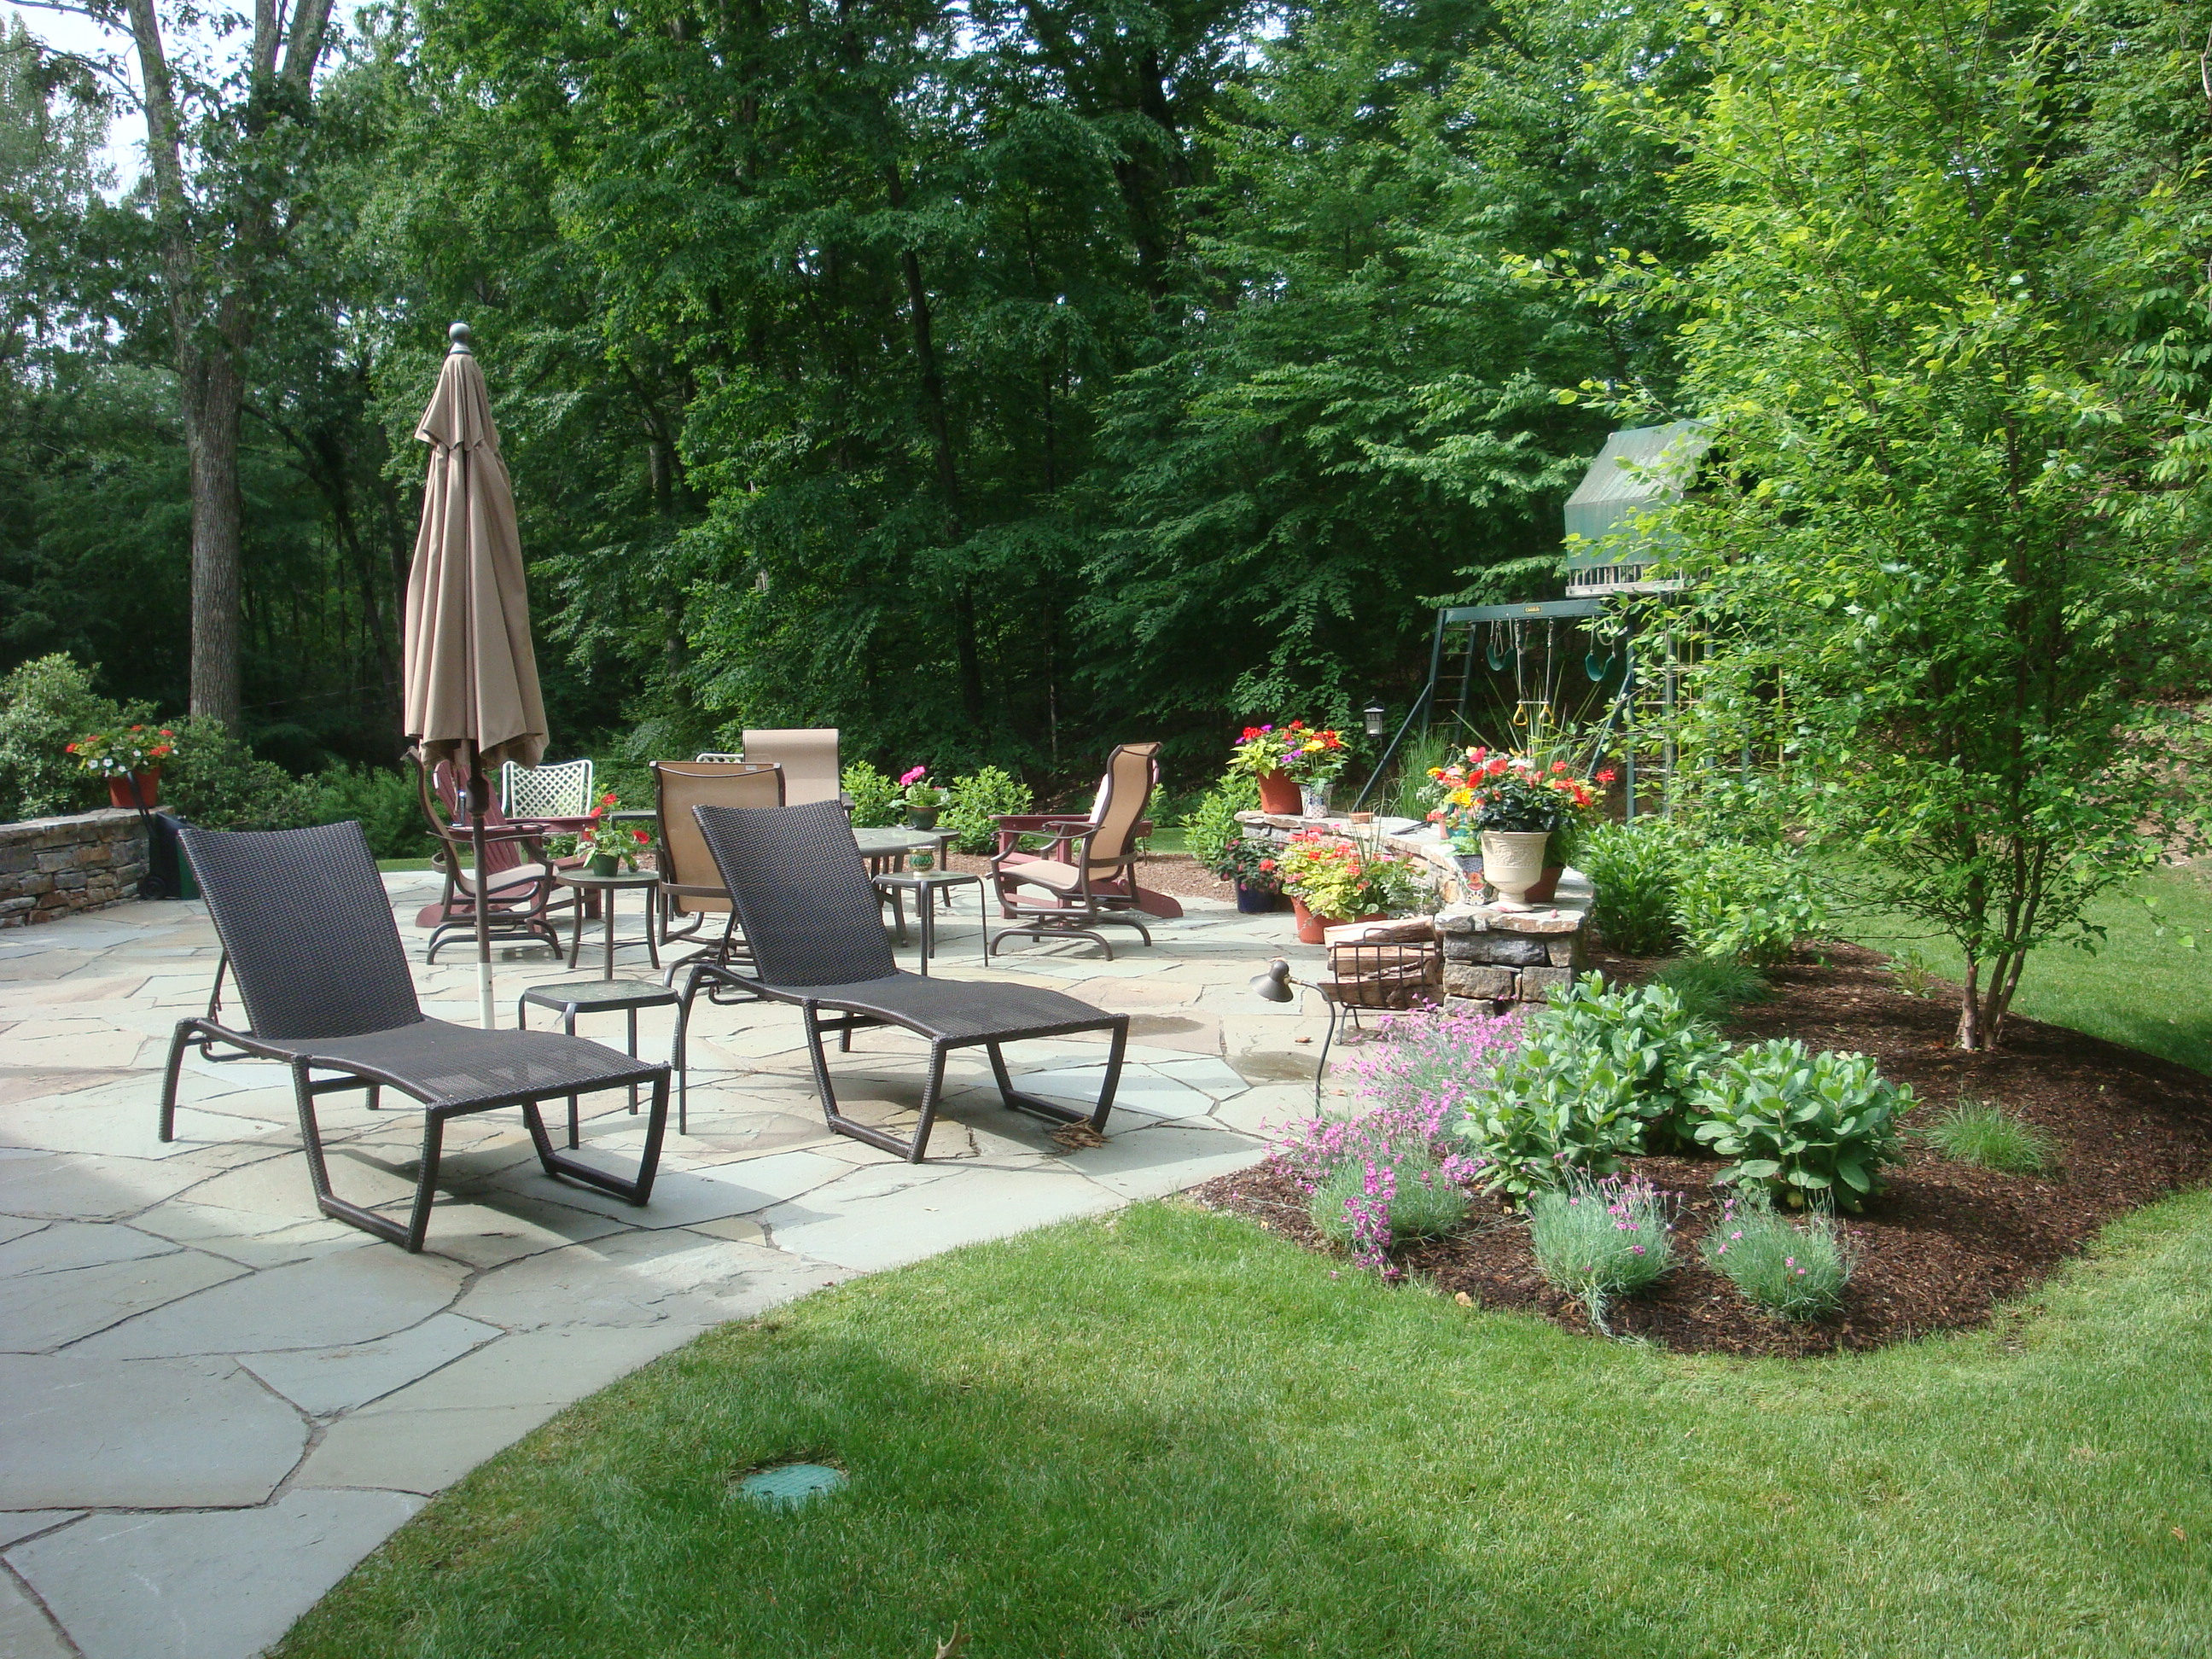 Patios garden designers roundtable for Garden designs and landscapes